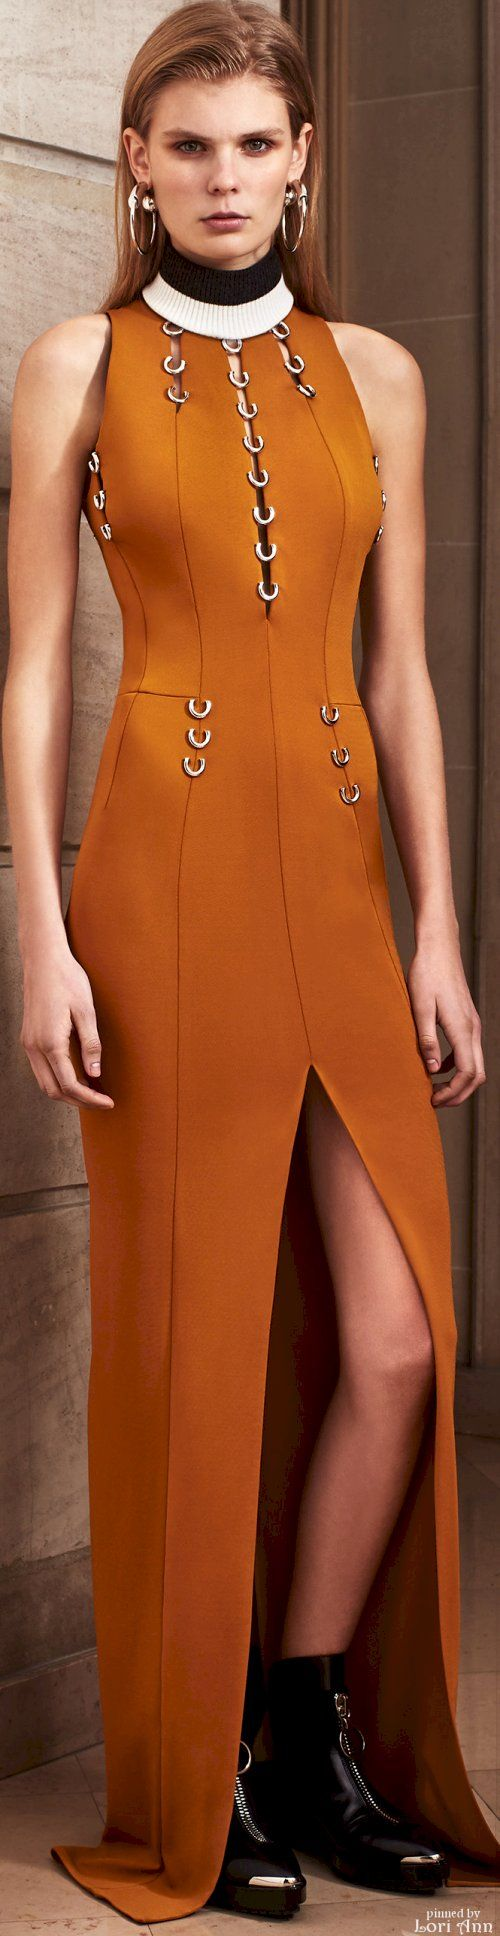 Mugler Pre-Fall 2016 women fashion outfit clothing style apparel @roressclothes closet ideas